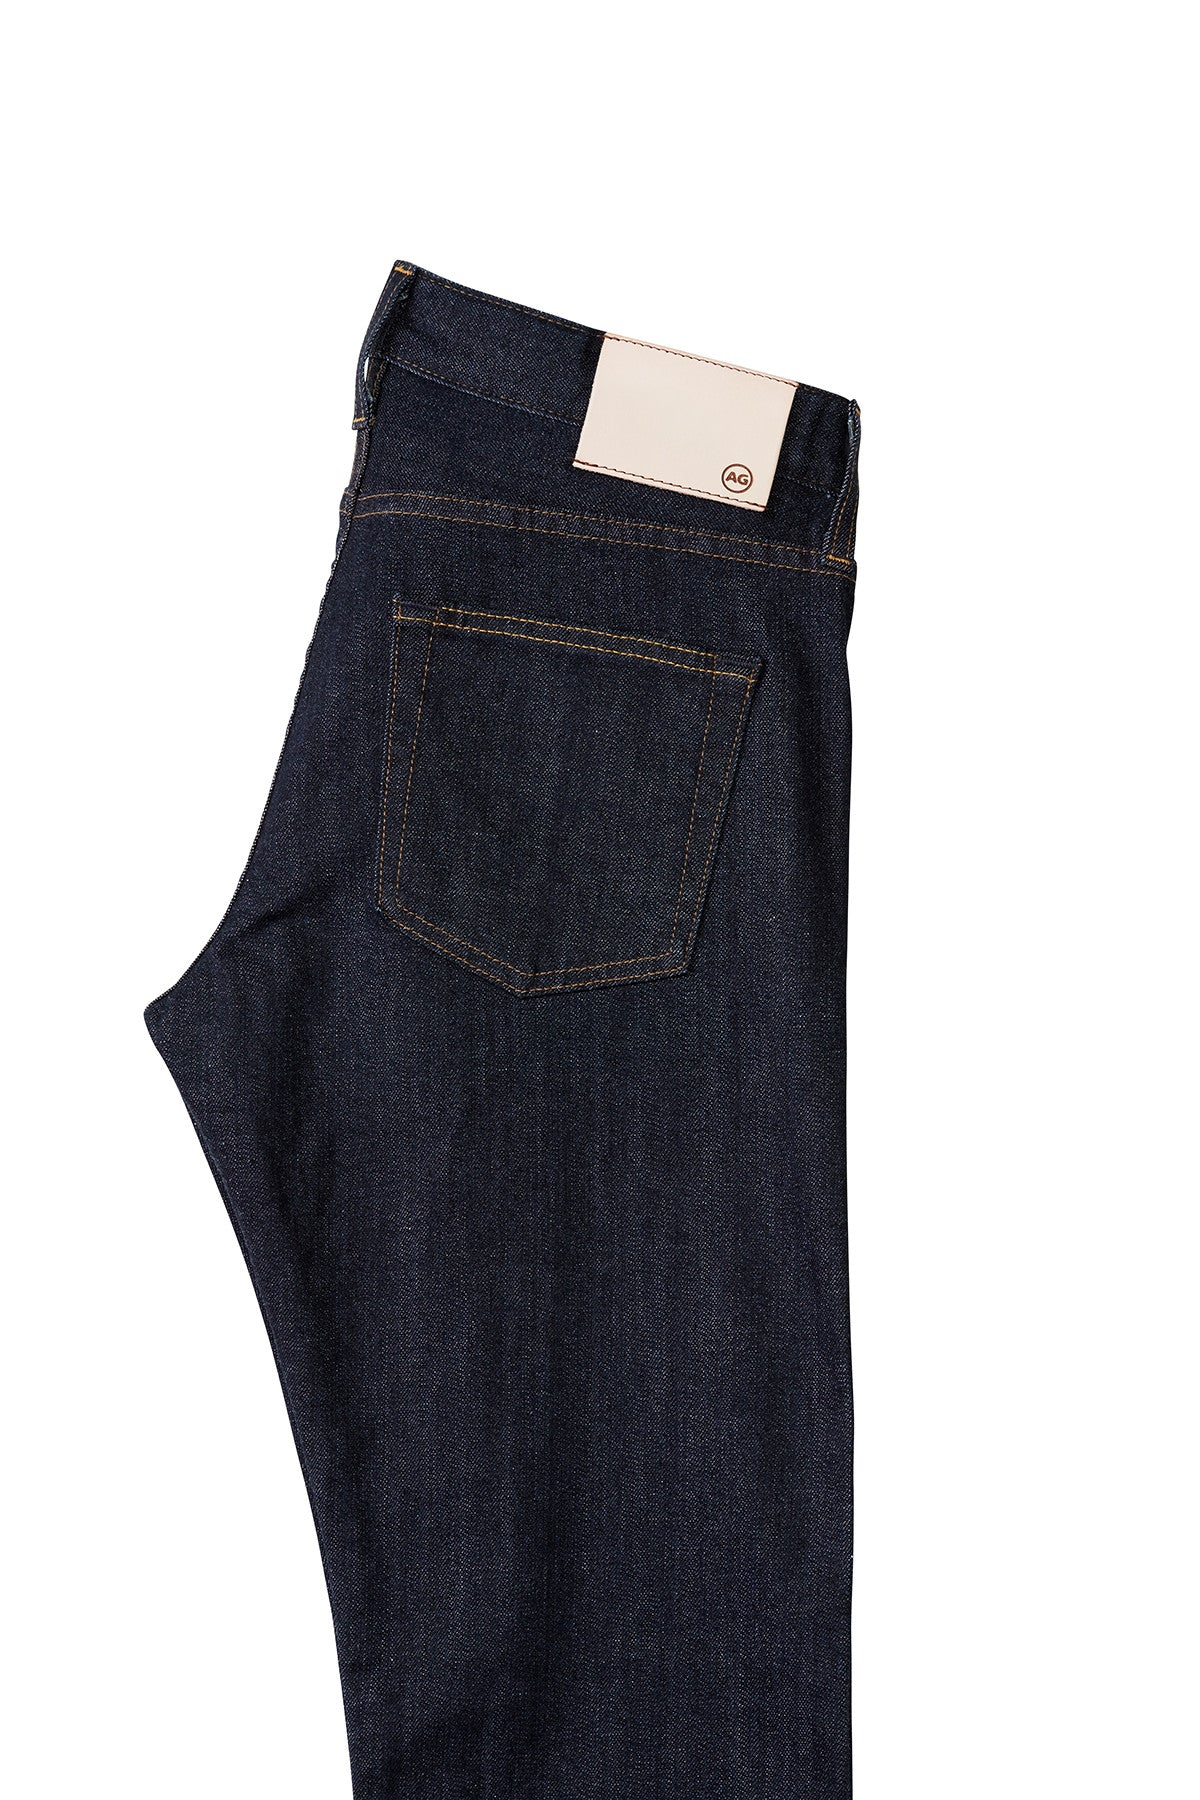 AG 'Matchbox' Slim Fit Jeans in Dark Stretch Selvage (Alpha)